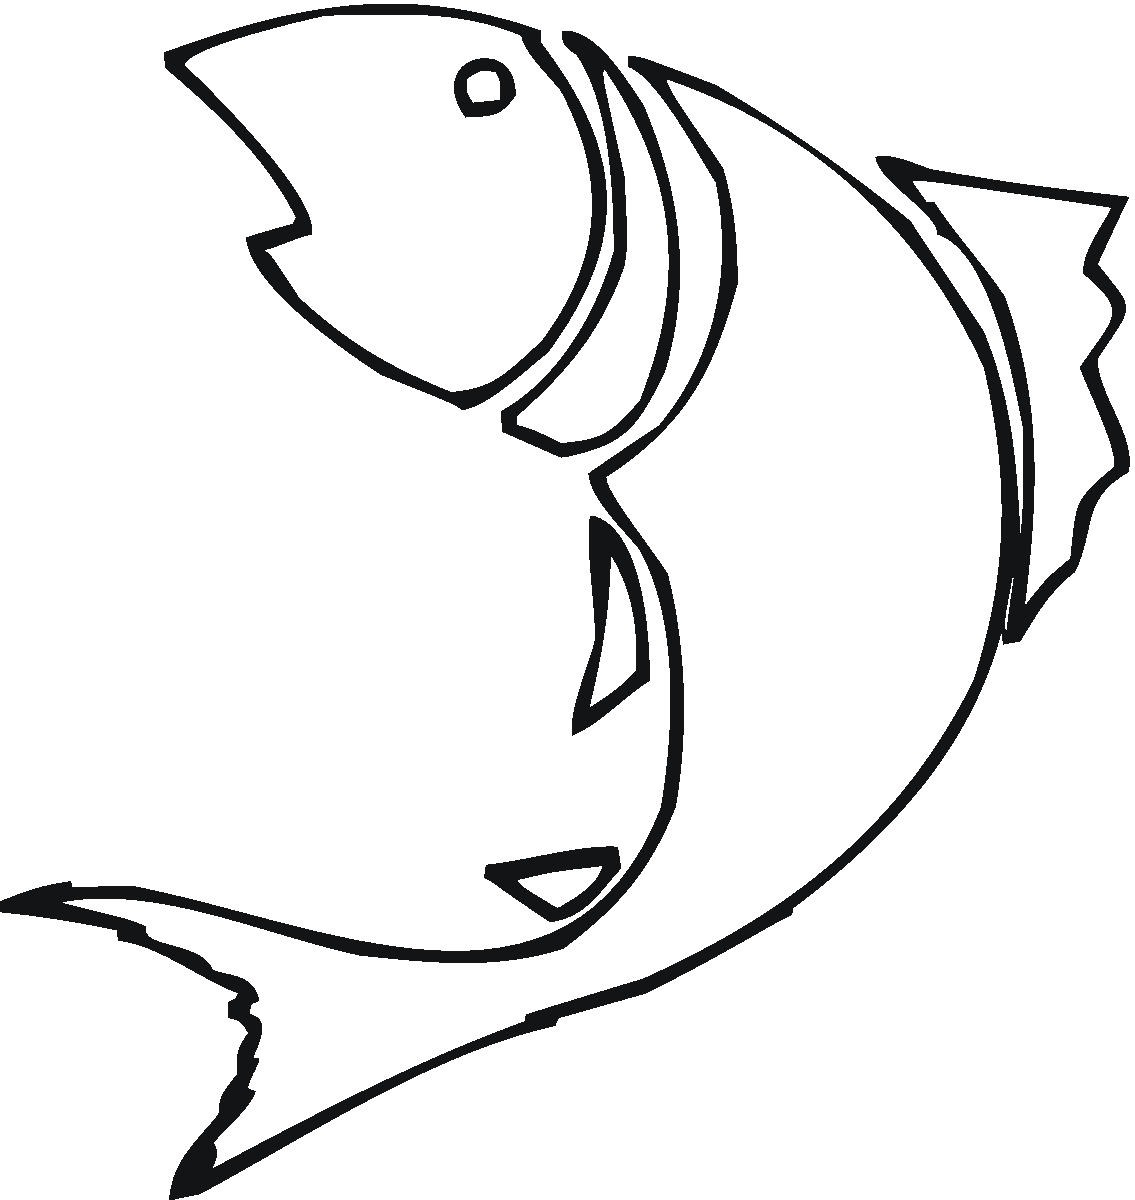 1135x1200 Best Photos Of Fish Outline Drawing